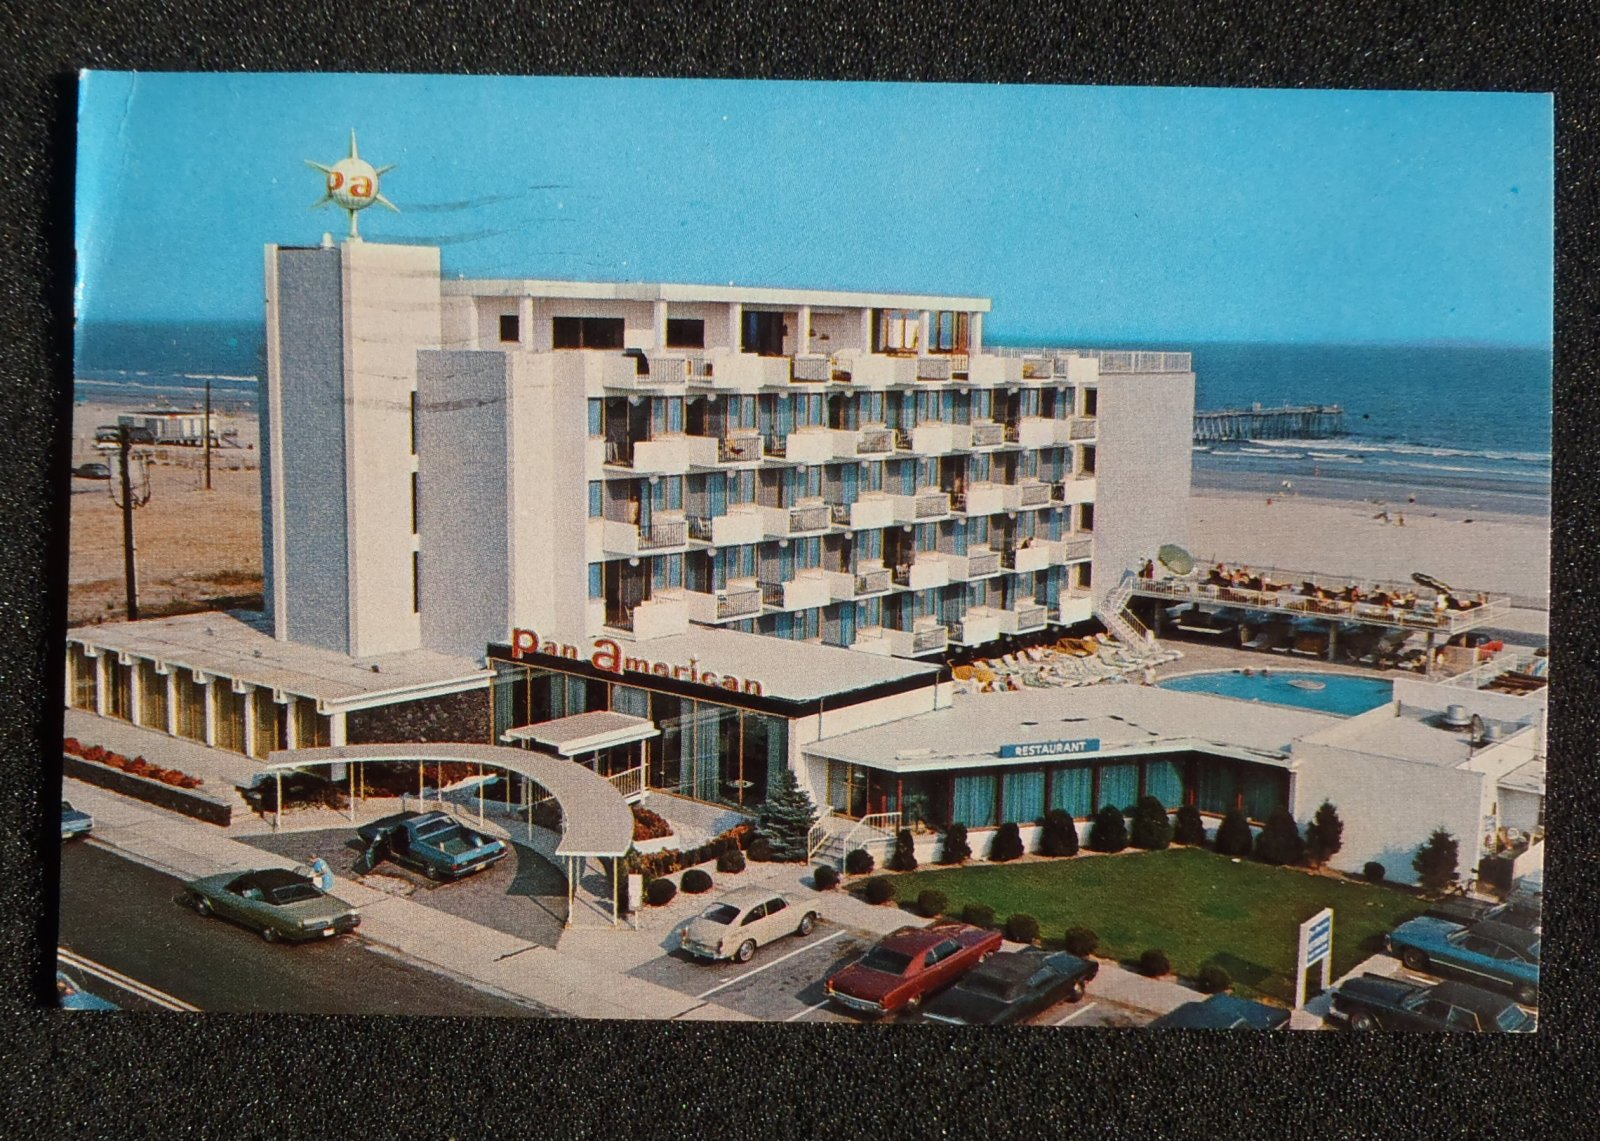 1975 Pan American Motor Inn Old Cars Wildwood Crest Nj